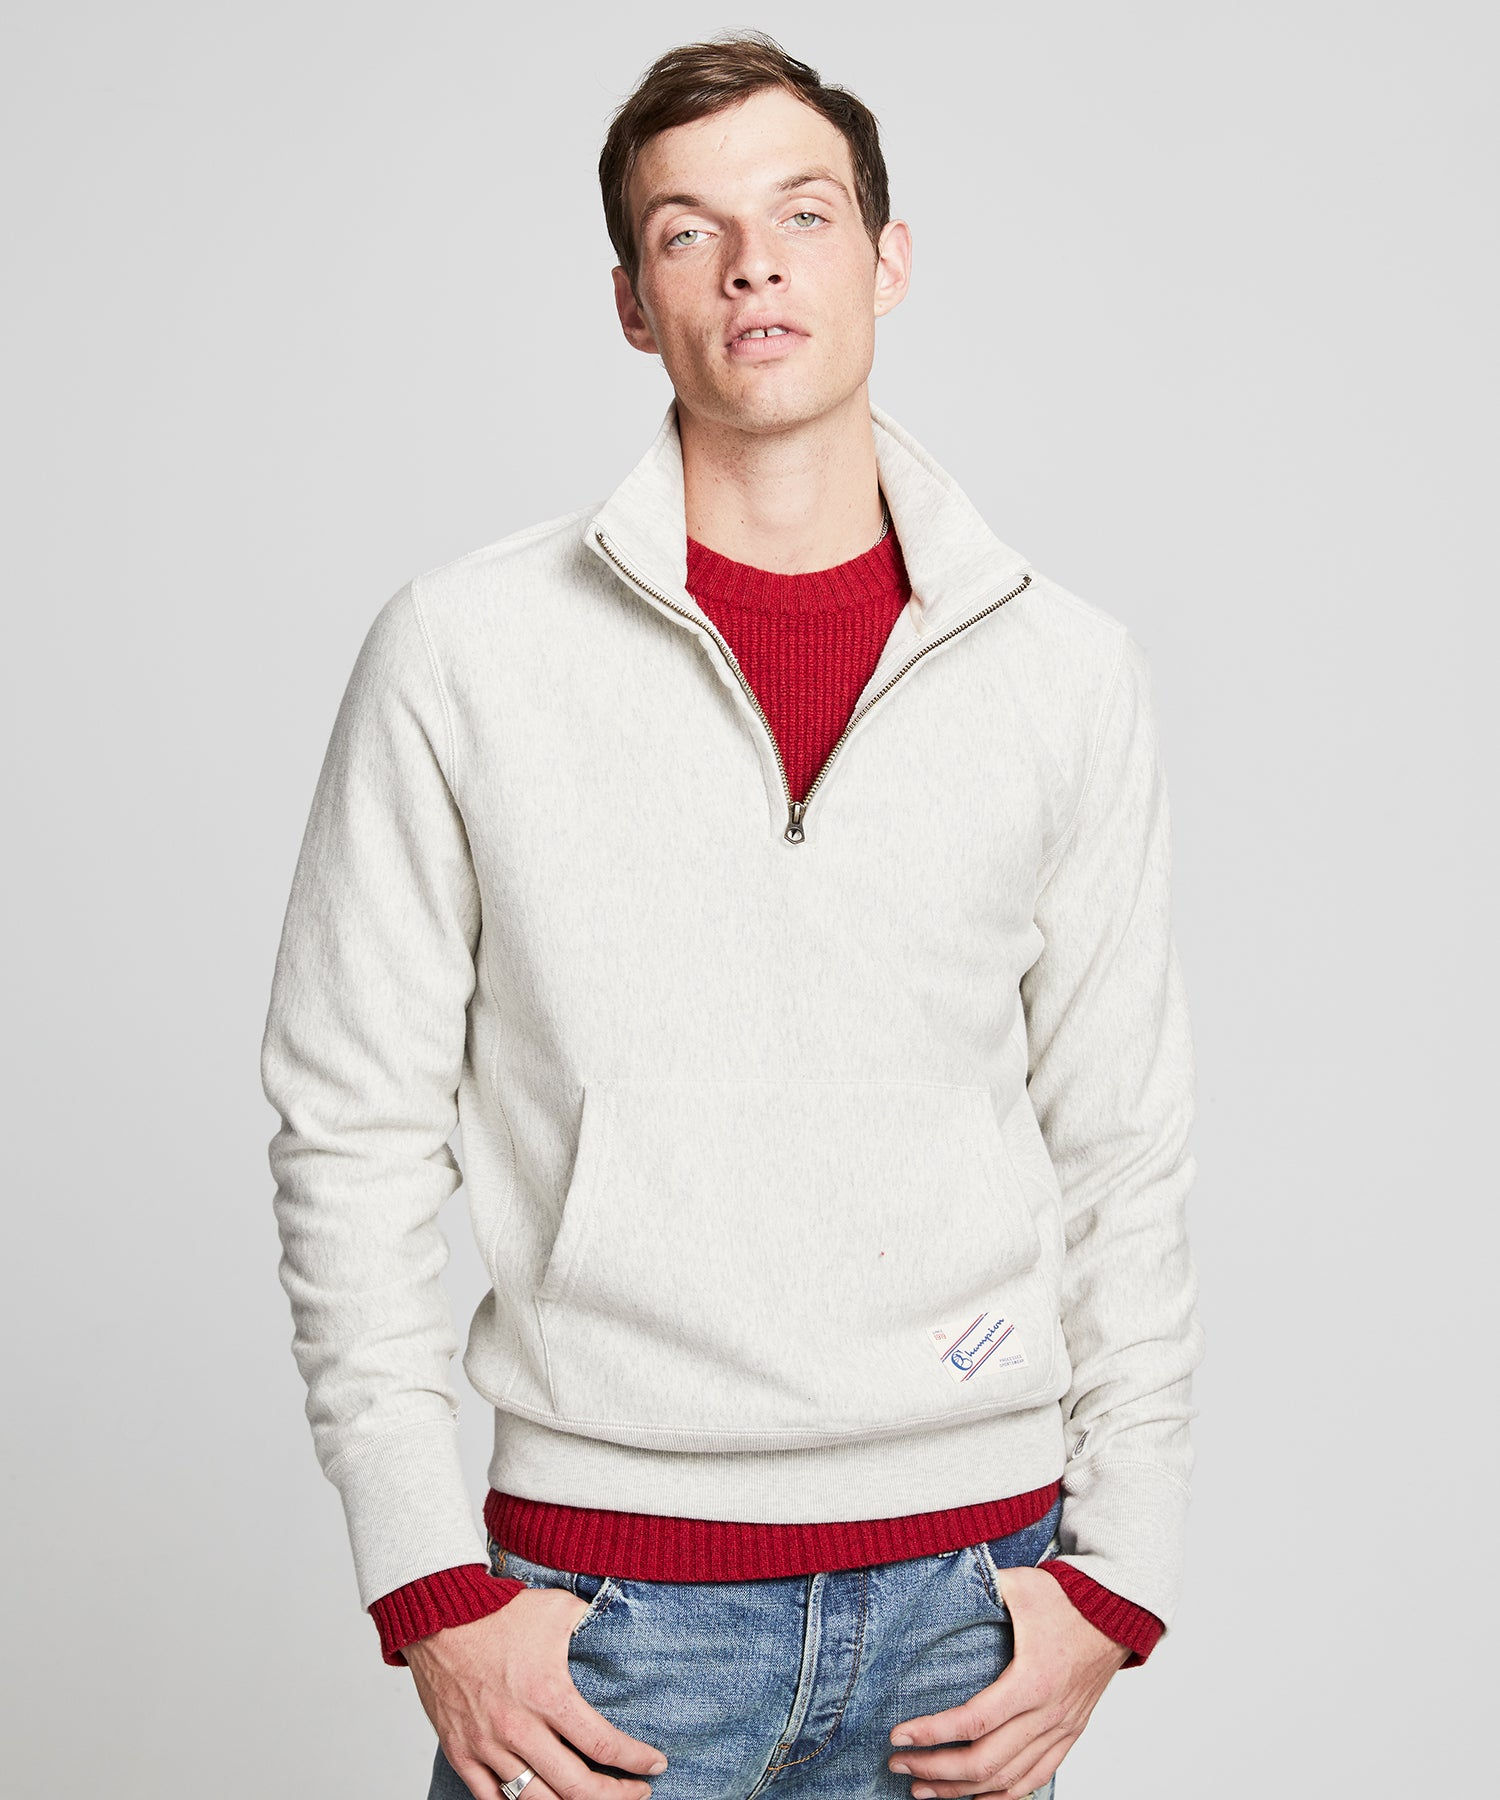 Quarter Zip Sweatshirt in Eggshell Mix